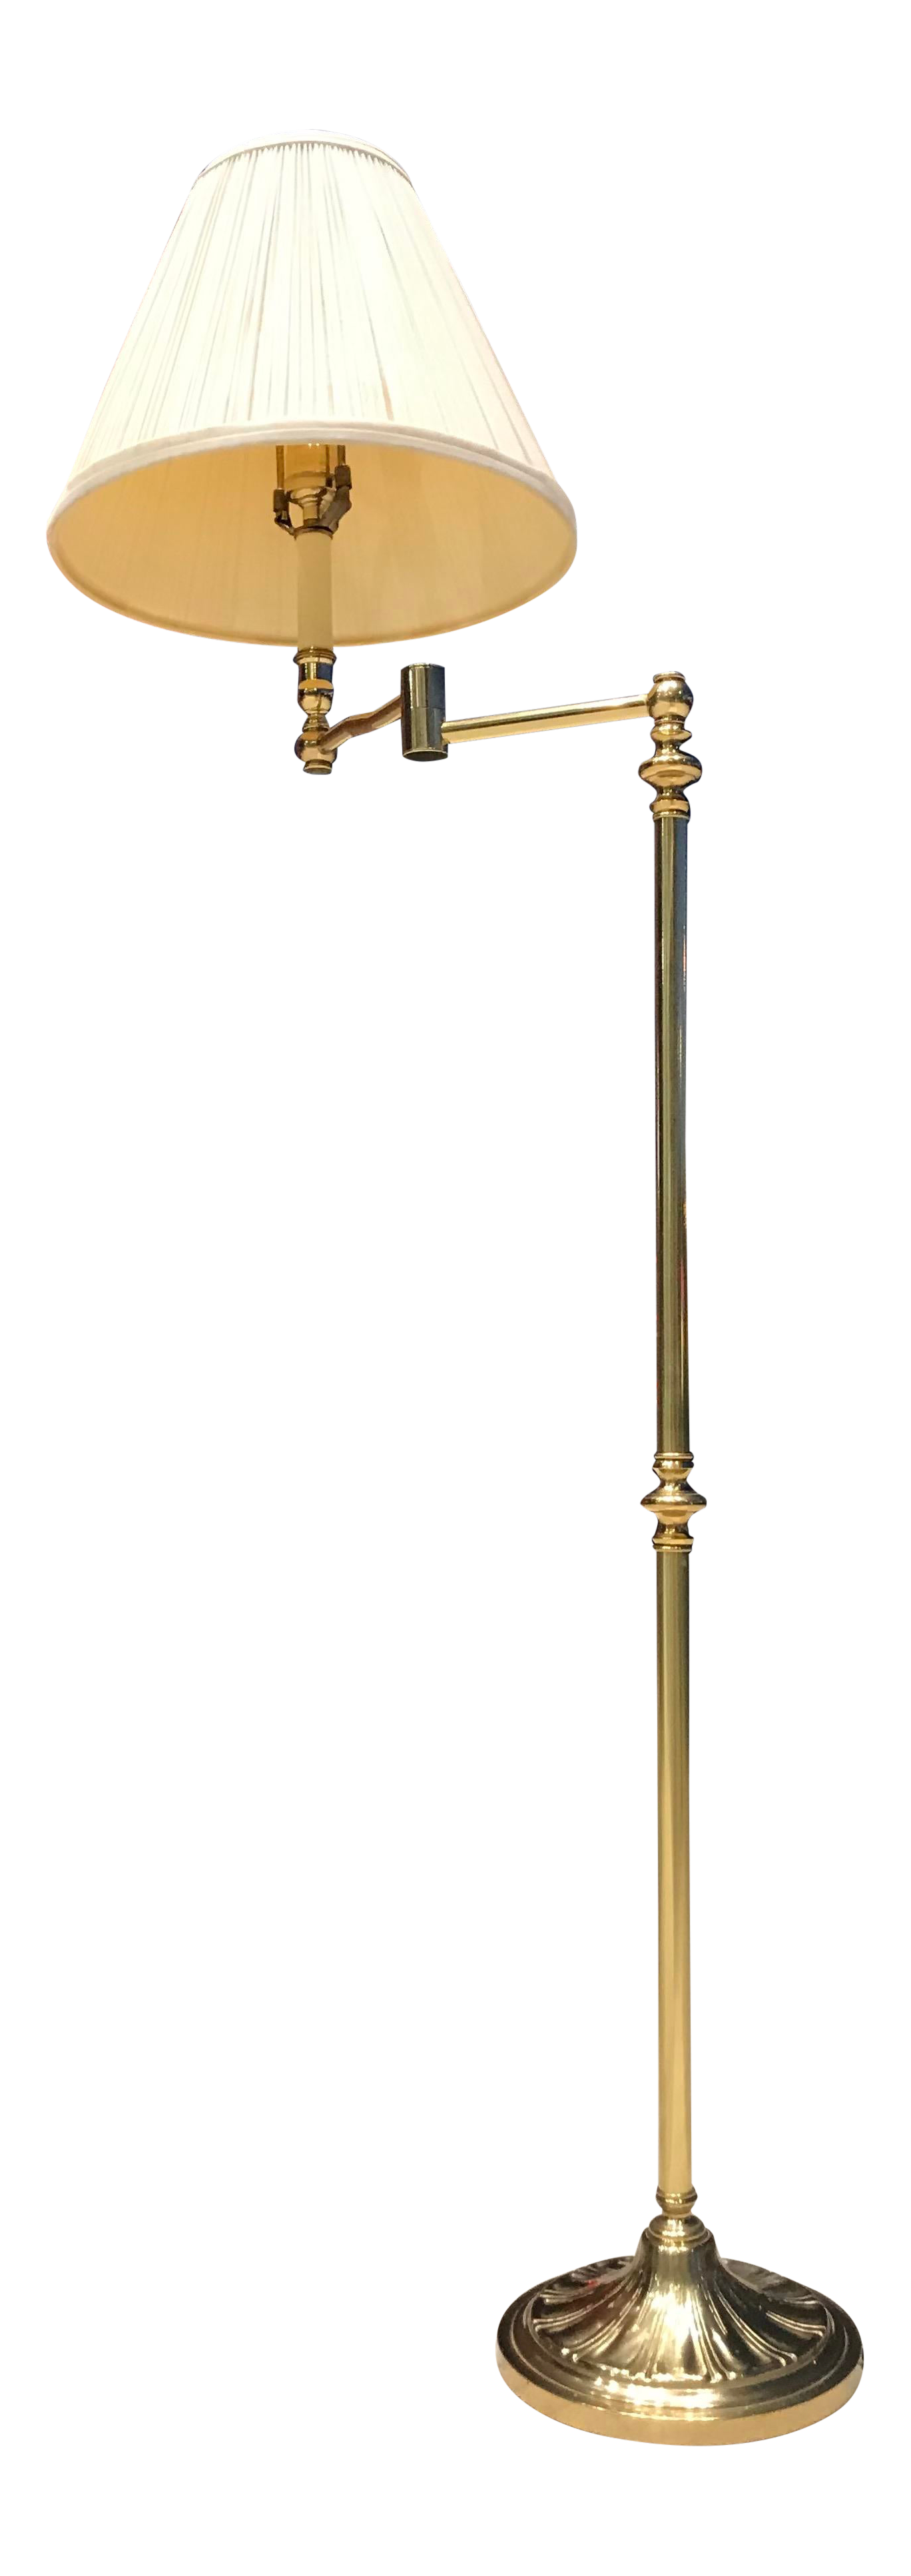 Image of: Vintage Brass Swing Arm Floor Lamp With Original Paper Shade By Remington Chairish